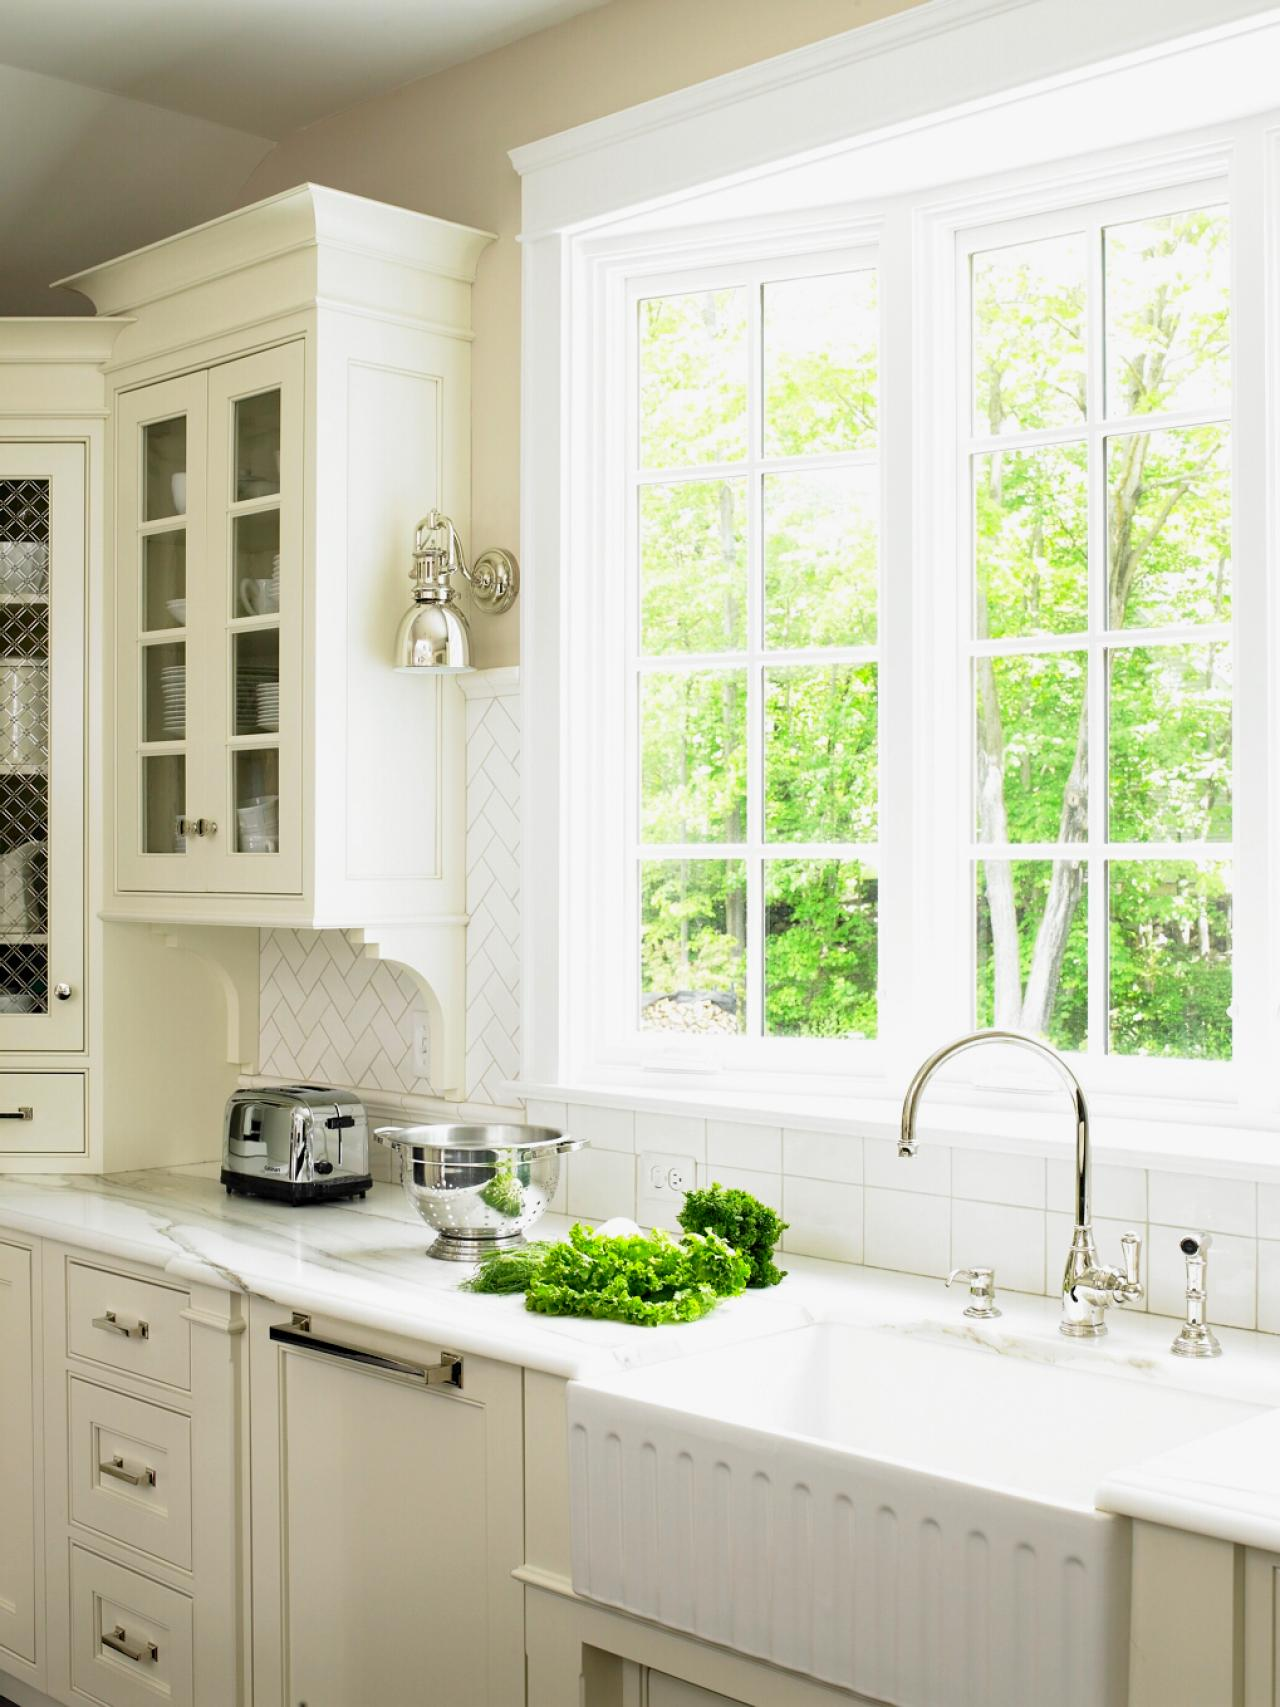 kitchen window treatments ideas: hgtv pictures & tips | hgtv